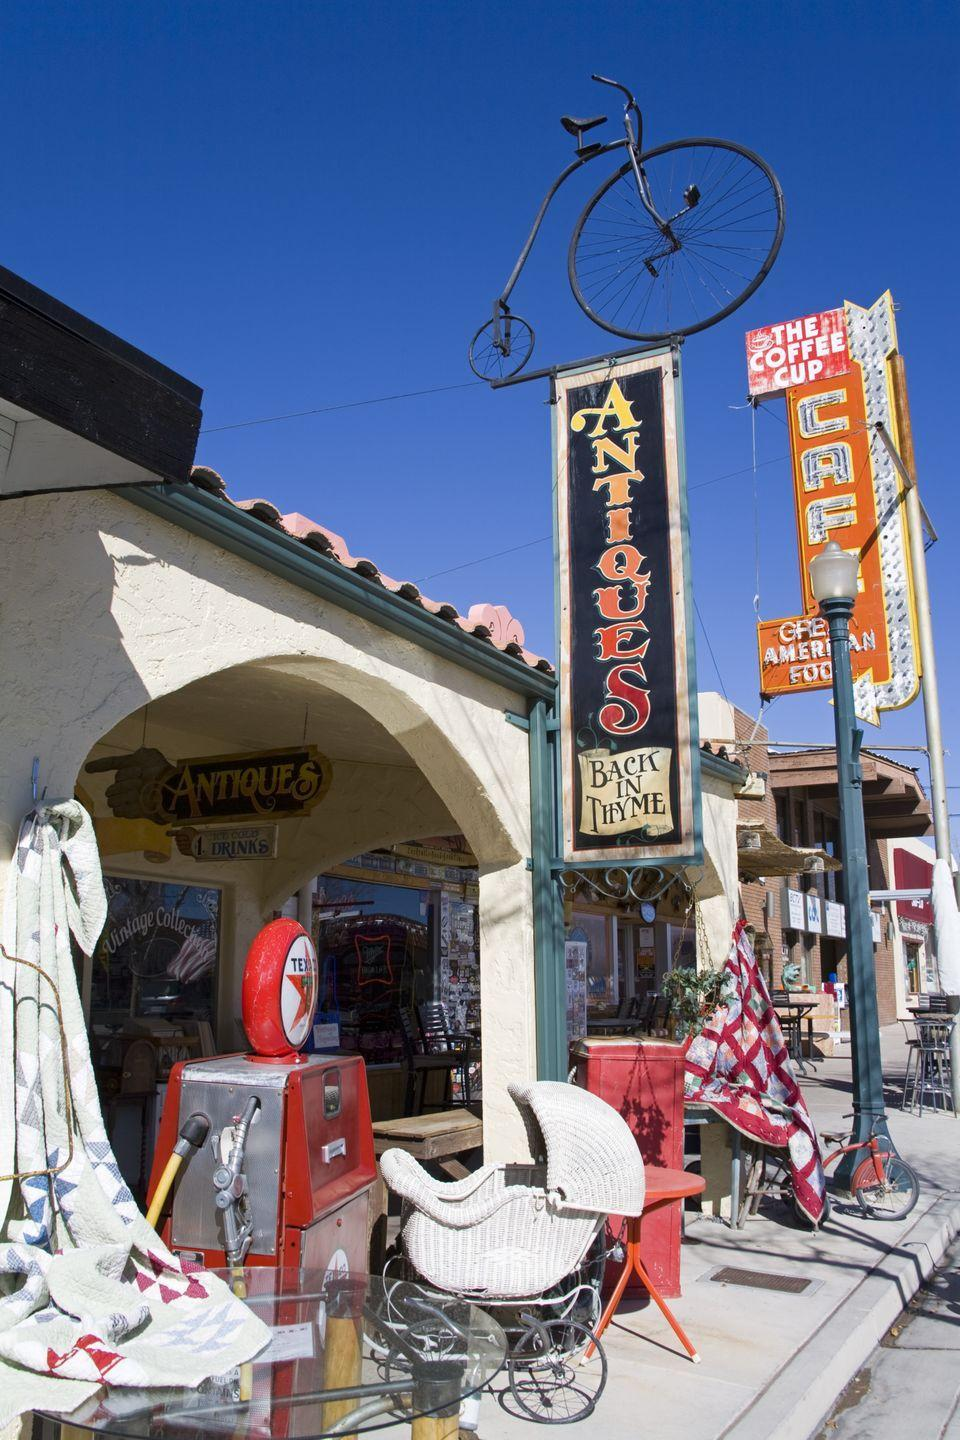 """<p>On the quirkier end of the spectrum is Boulder City, Nevada — a town of about 15,000 located approximately 26 miles from Las Vegas. At <a href=""""http://www.yelp.com/biz/antique-depot-boulder-city"""" rel=""""nofollow noopener"""" target=""""_blank"""" data-ylk=""""slk:The Antique Depot"""" class=""""link rapid-noclick-resp"""">The Antique Depot</a> and <a href=""""http://www.yelp.com/biz/antique-depot-boulder-city"""" rel=""""nofollow noopener"""" target=""""_blank"""" data-ylk=""""slk:Sherman's House of Antiques"""" class=""""link rapid-noclick-resp"""">Sherman's House of Antiques</a>, you can find everything from old neon signs to an antique washing machine.</p>"""